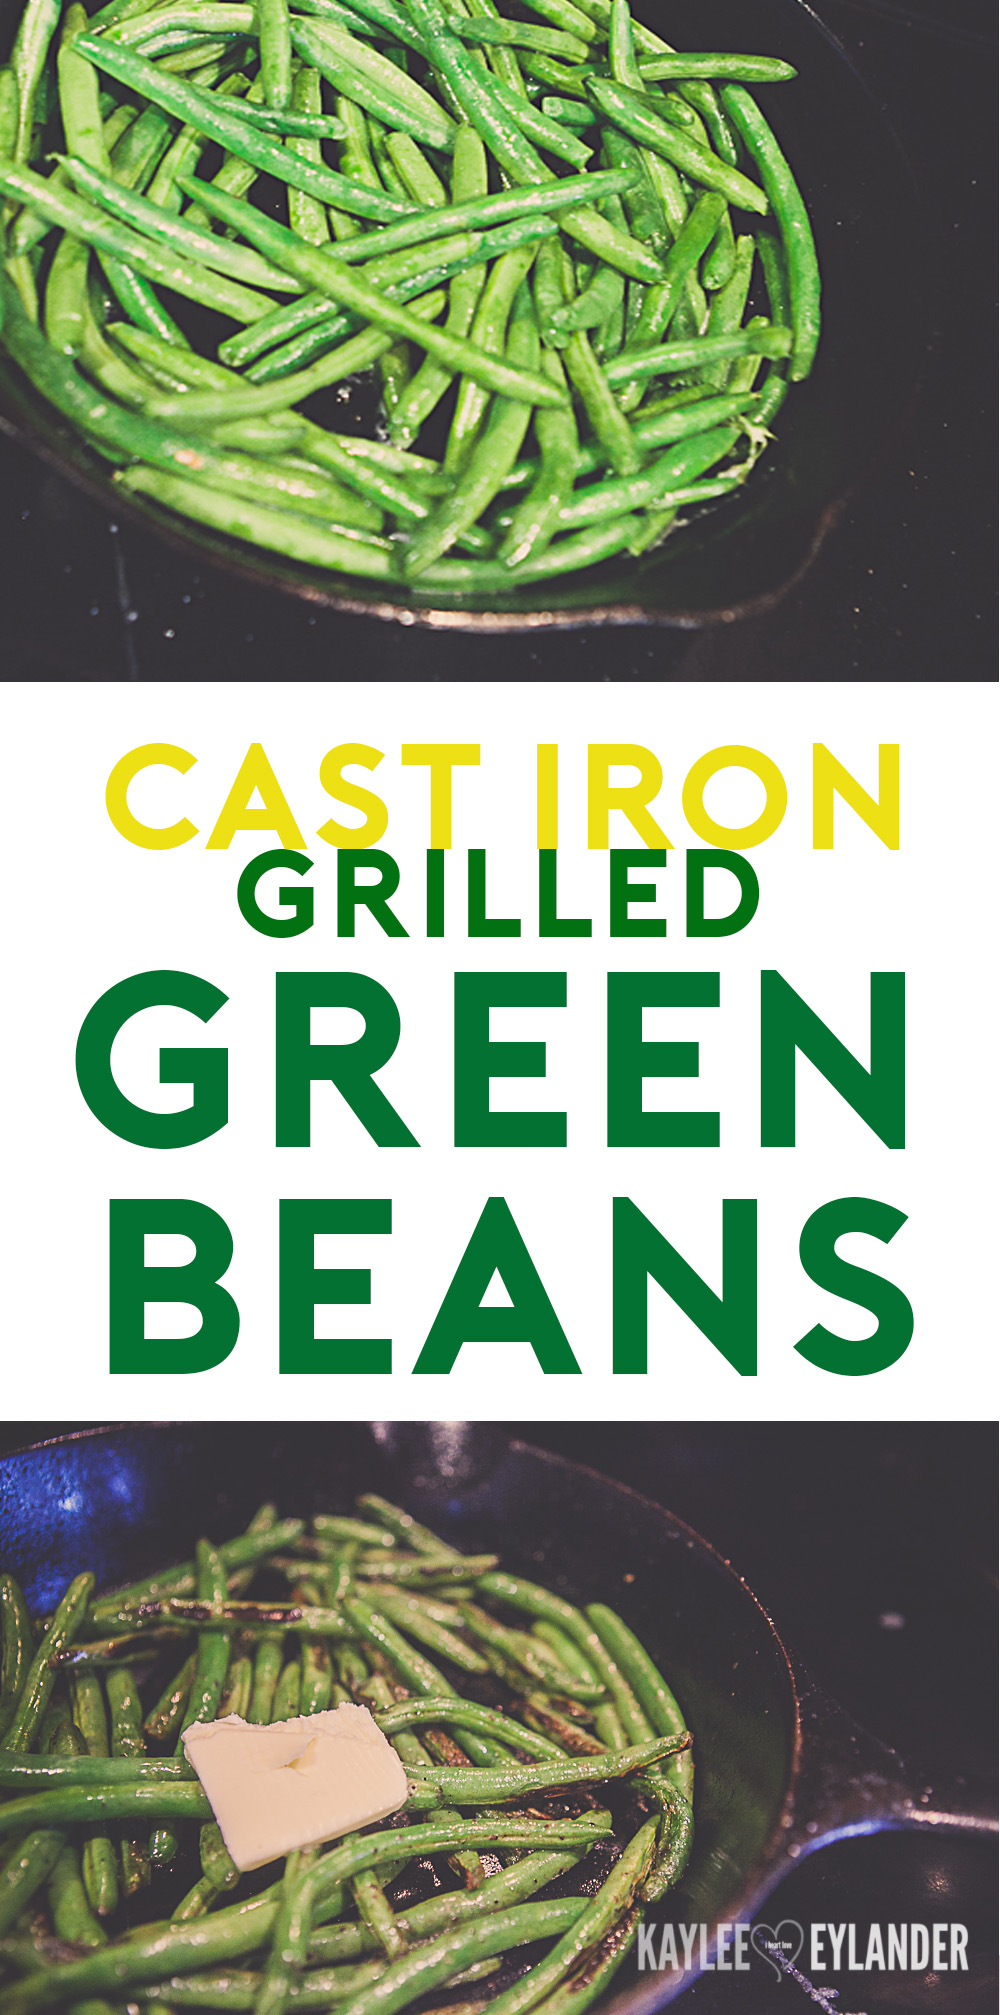 Cast Iron Grilled Green Beans Recipe